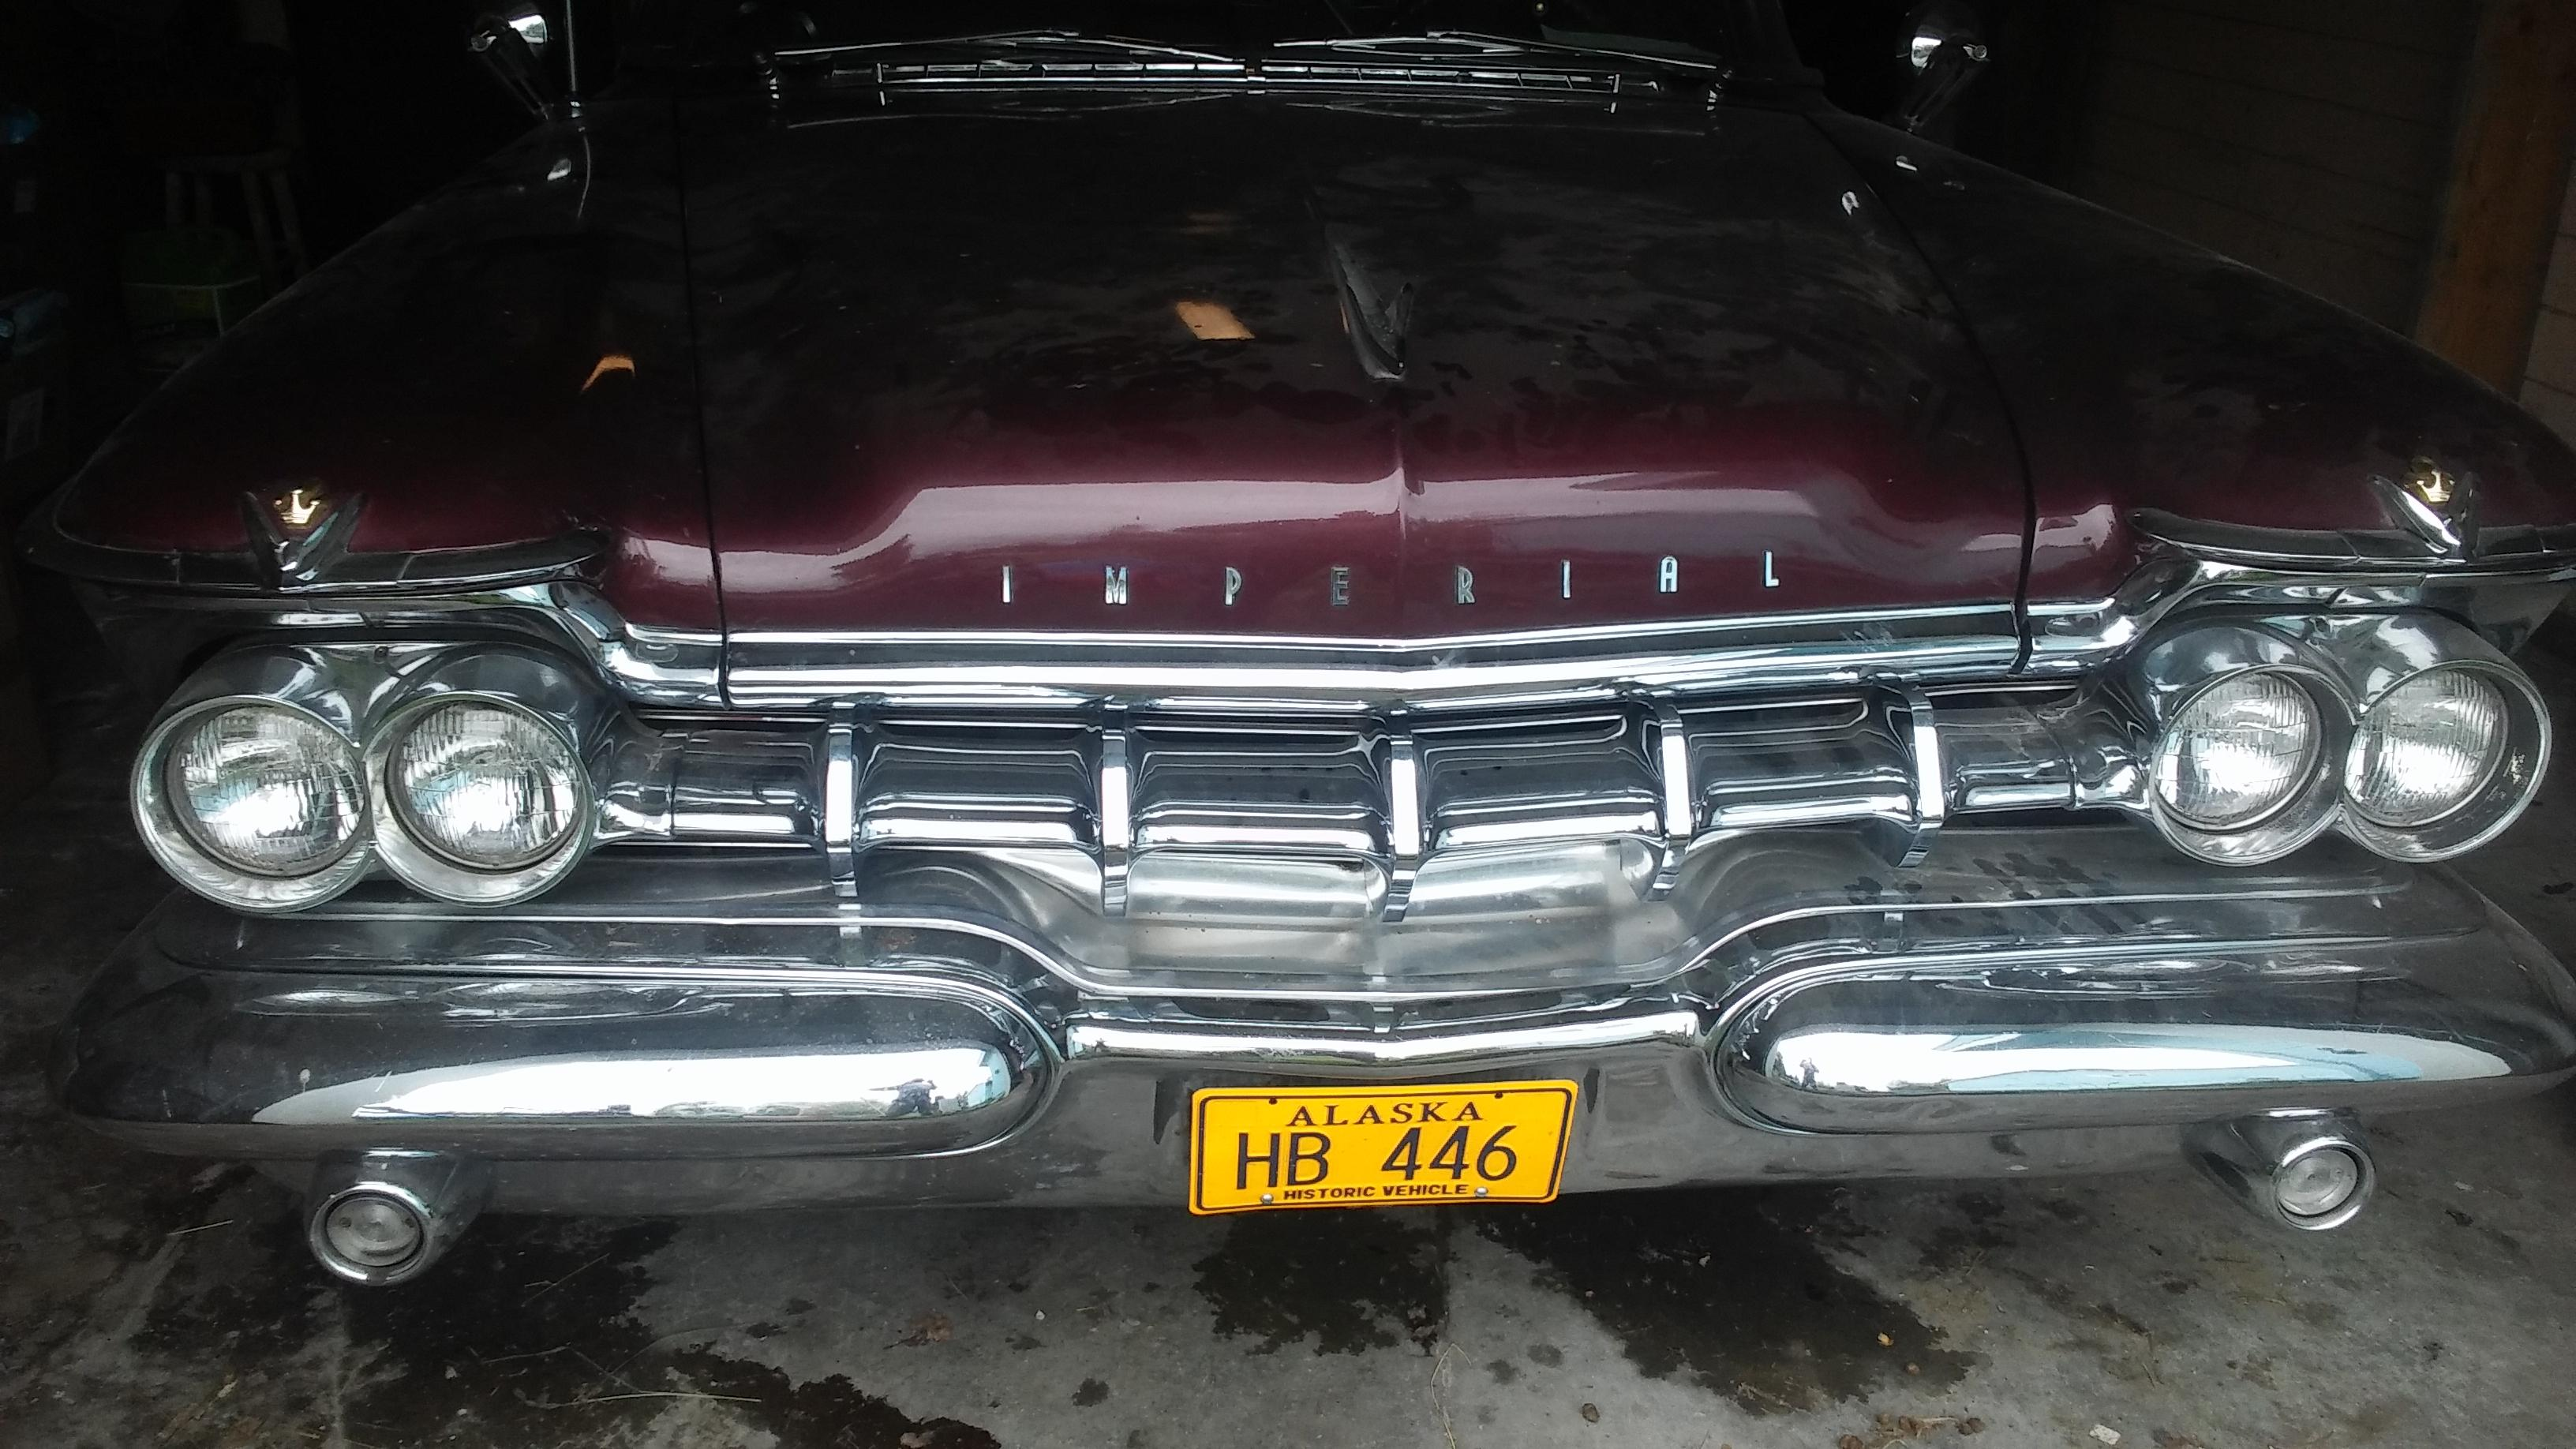 59 imperial possibly eisenhower Cars For Sale Antique